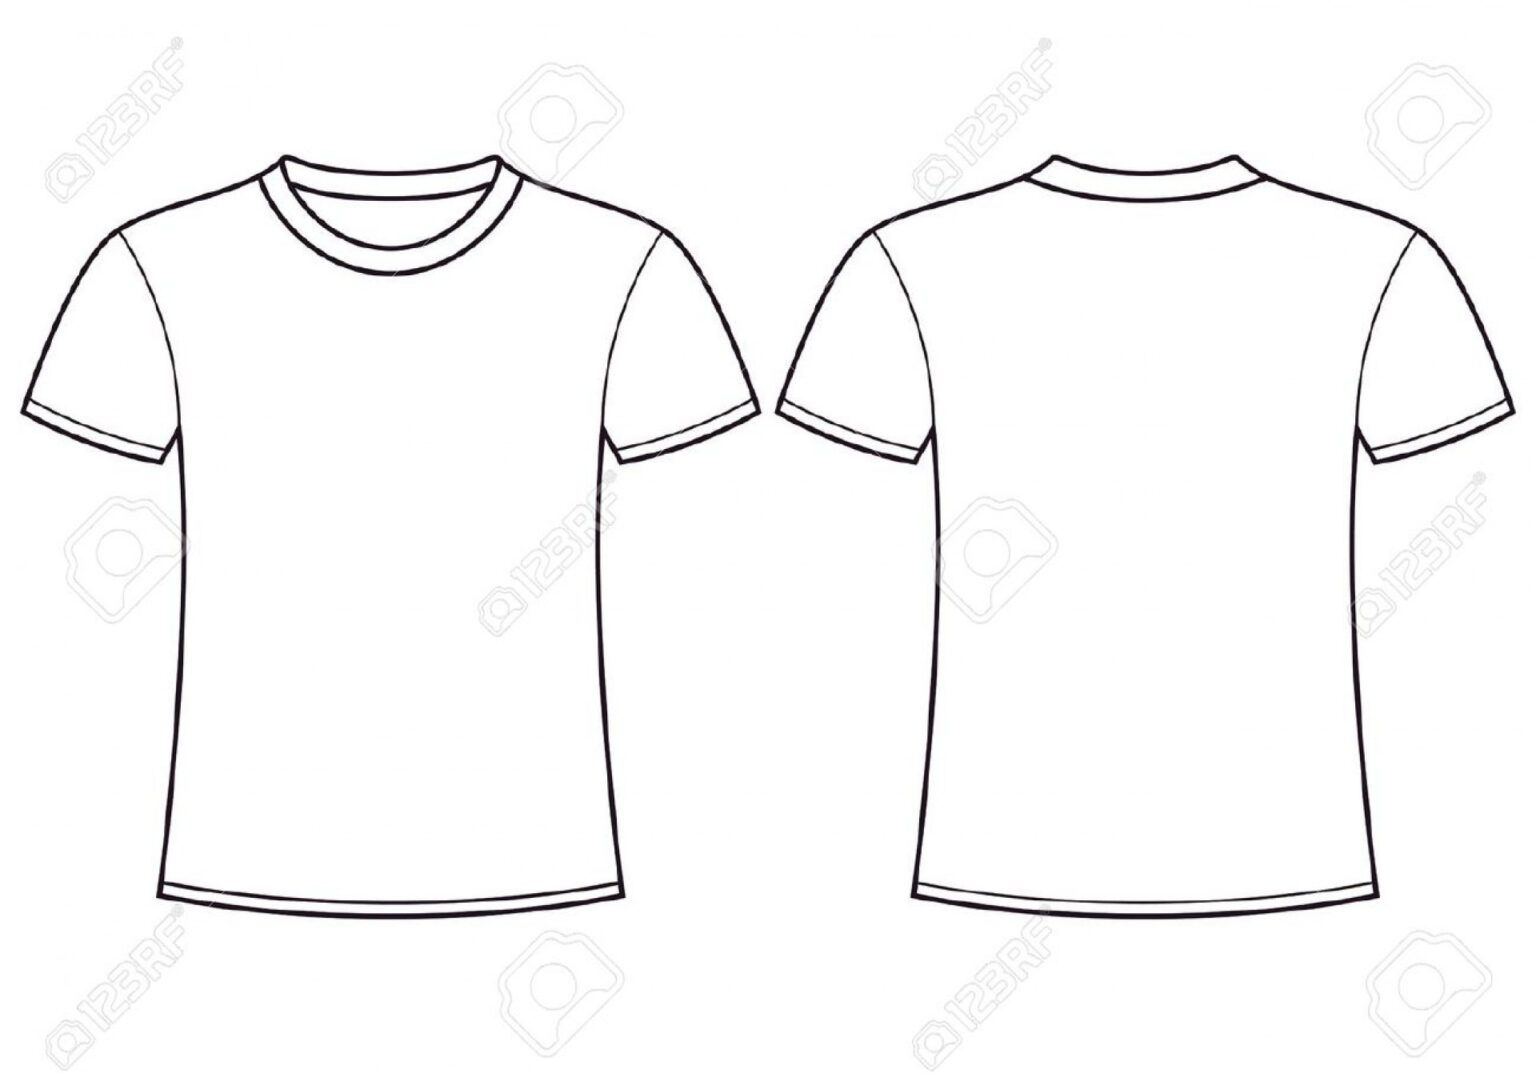 006 Blank Tee Shirt Template T Shirts Vector Beautiful Ideas Within Printable Blank Tshirt Template T Shirt Design Template Shirt Template Blank T Shirts